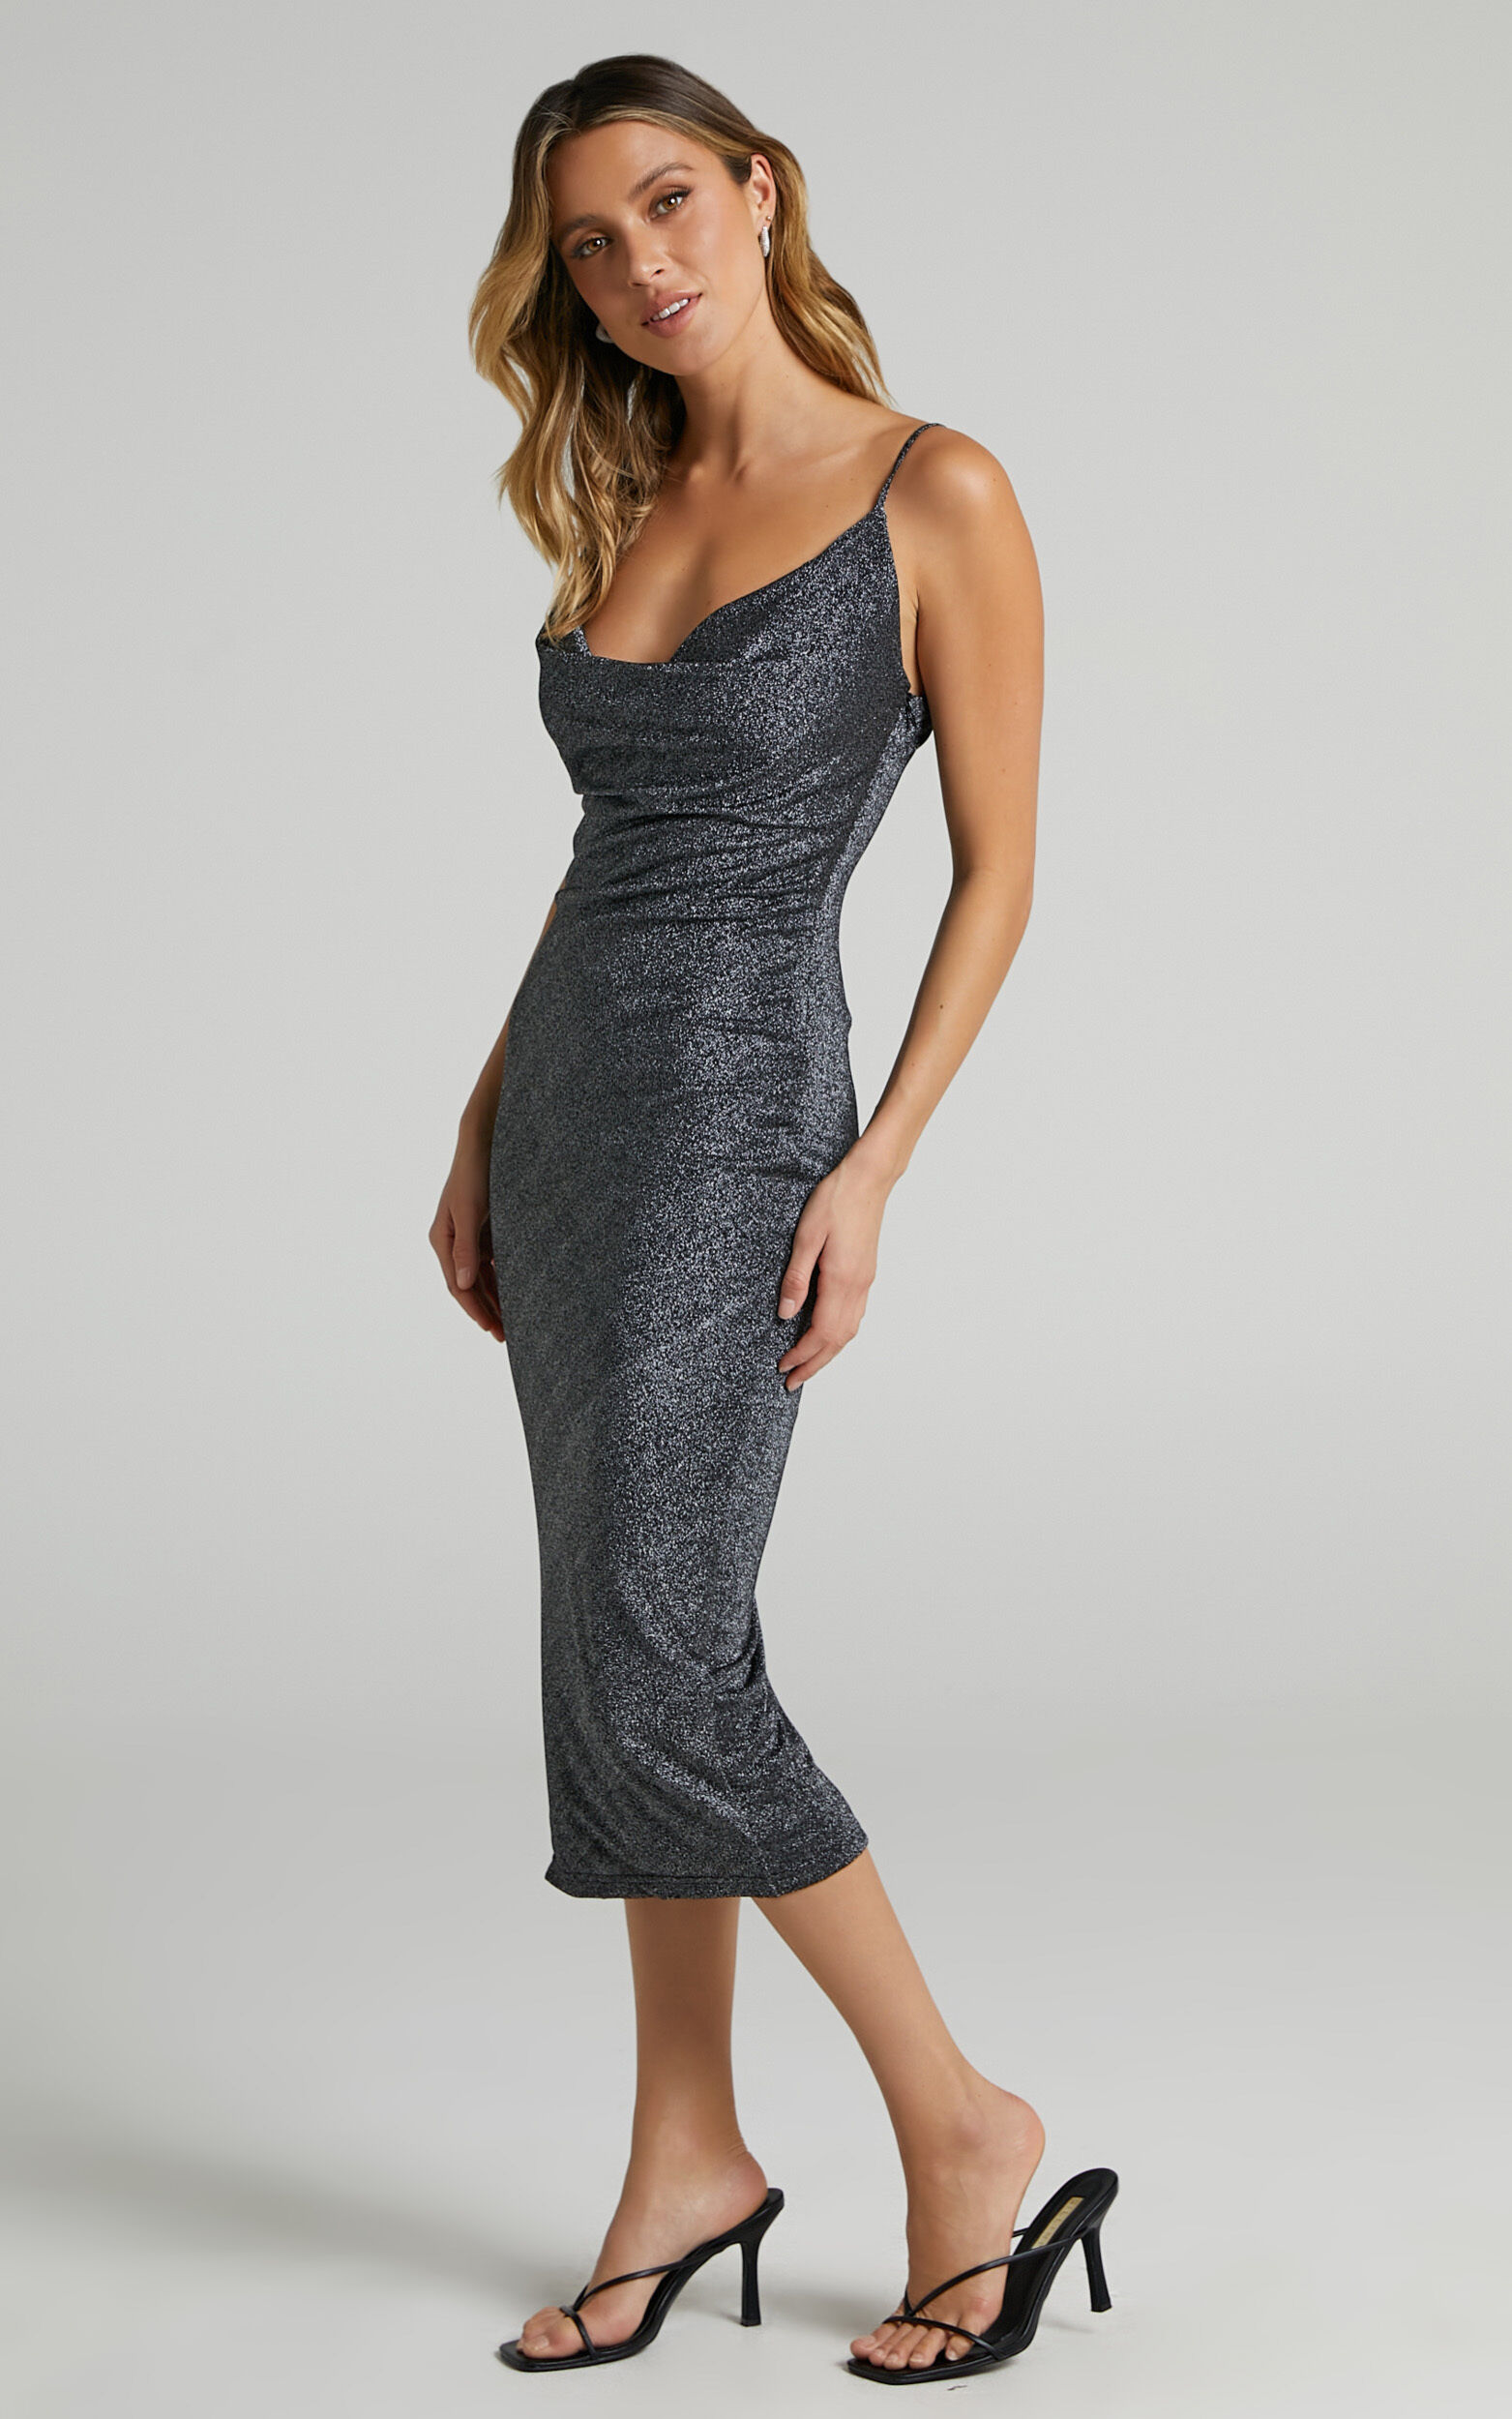 Amaliee Cowl Front Midi Dress in Black Lurex - 04, BLK1, super-hi-res image number null